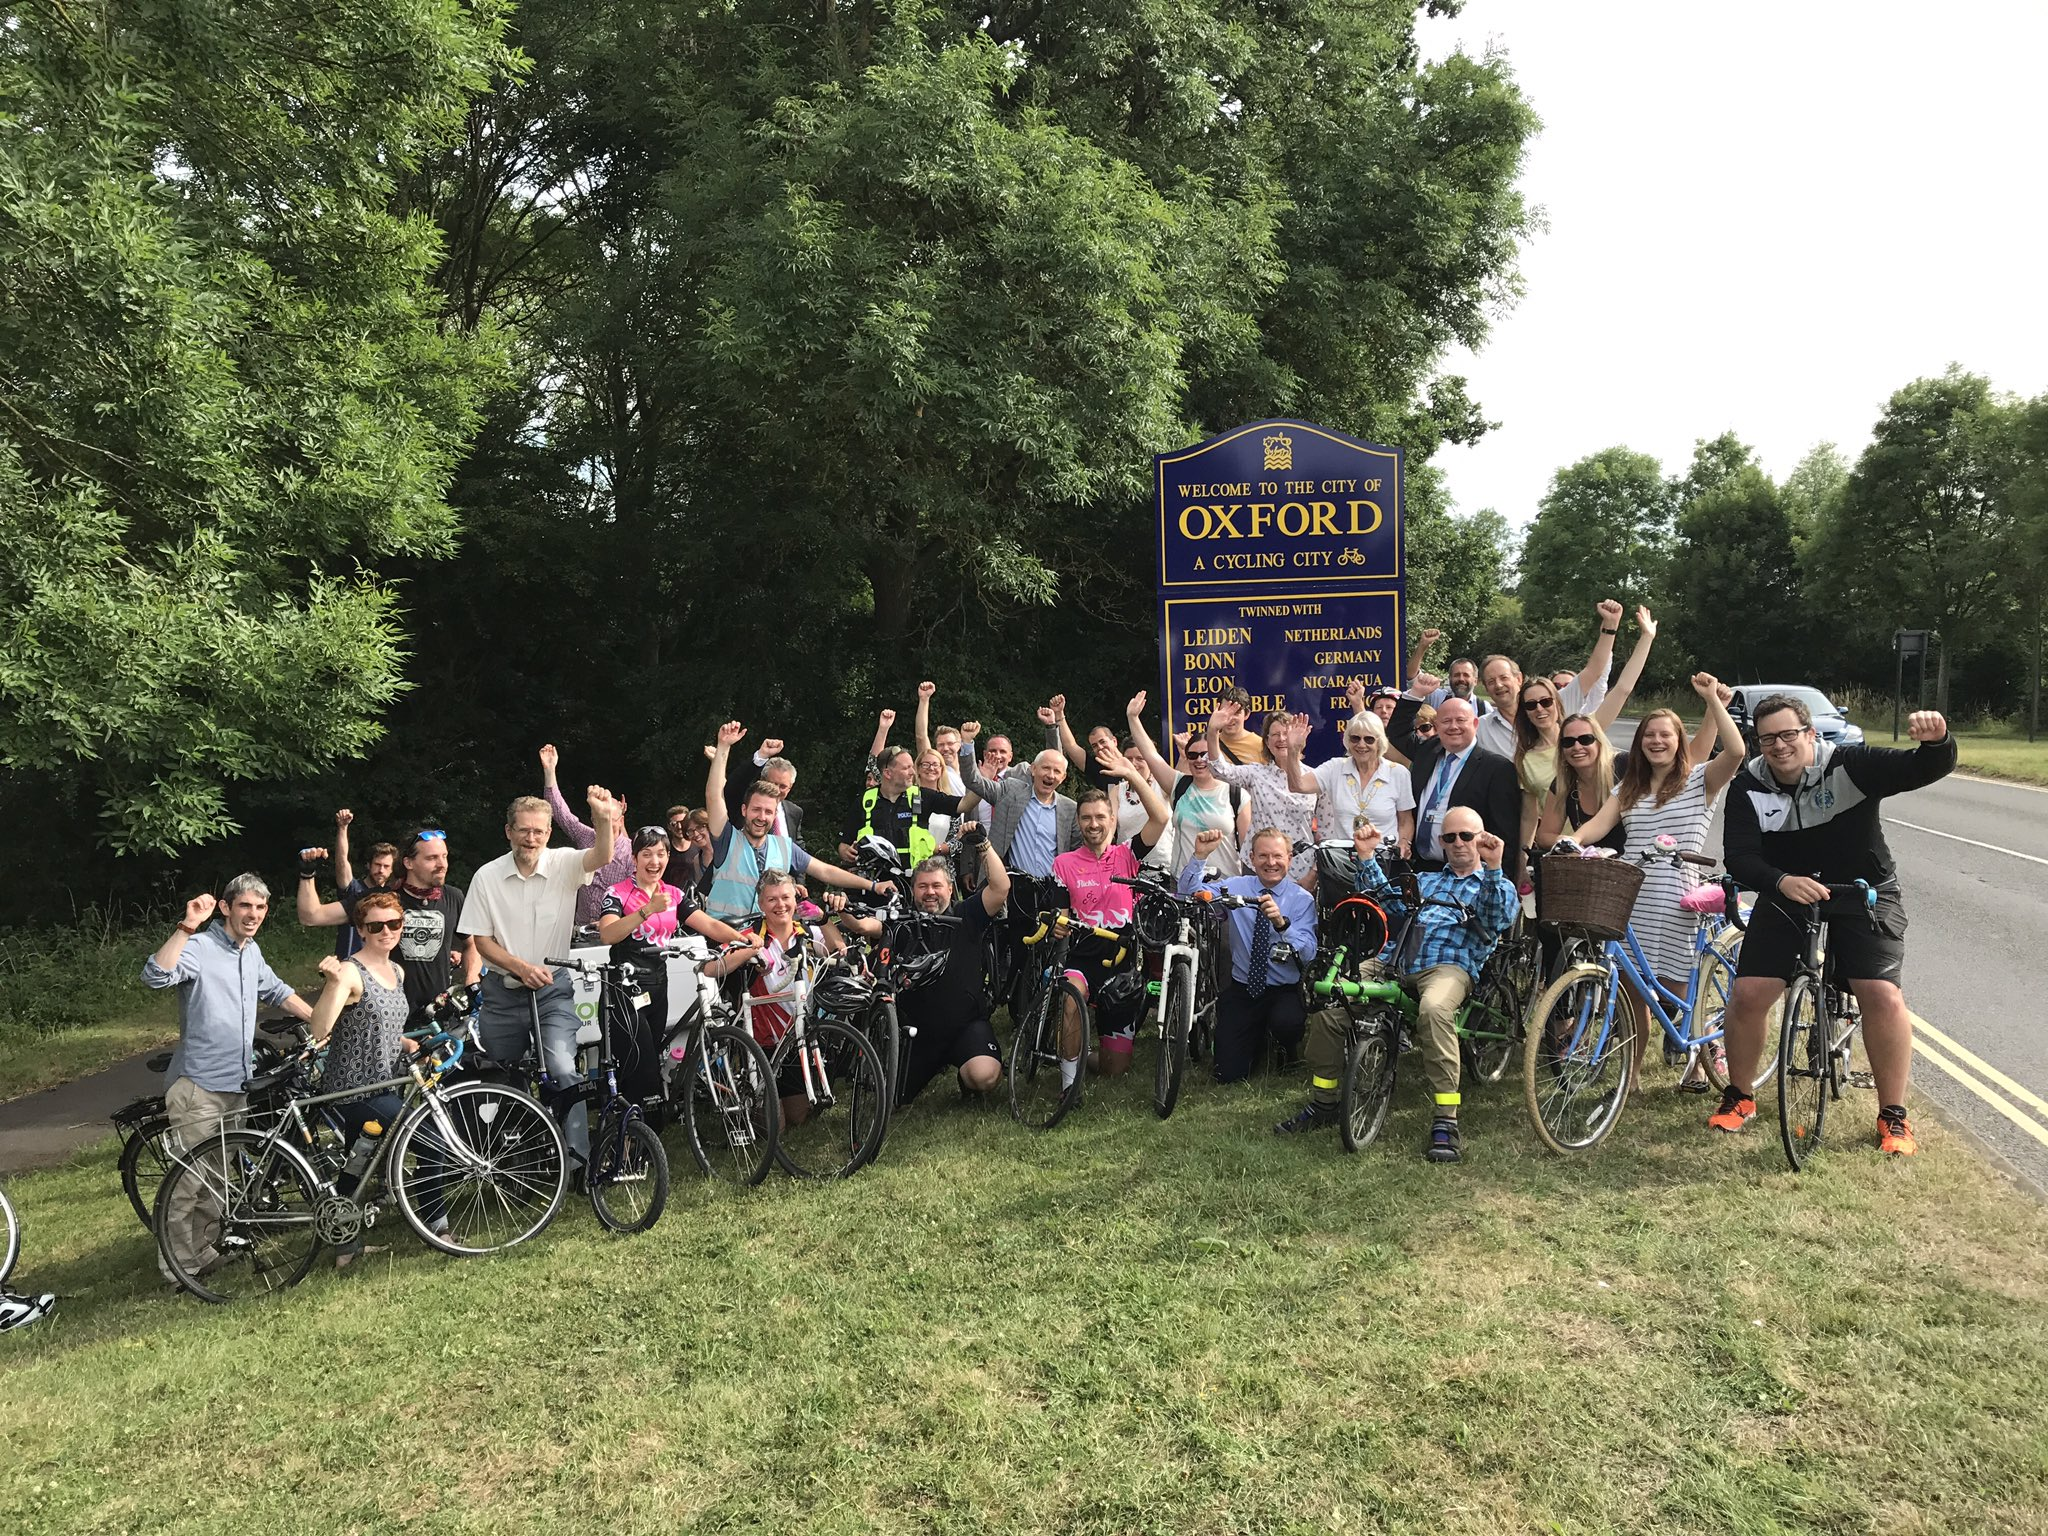 Jake's recent campaign success was getting Oxford recognised as a 'Cycling City'